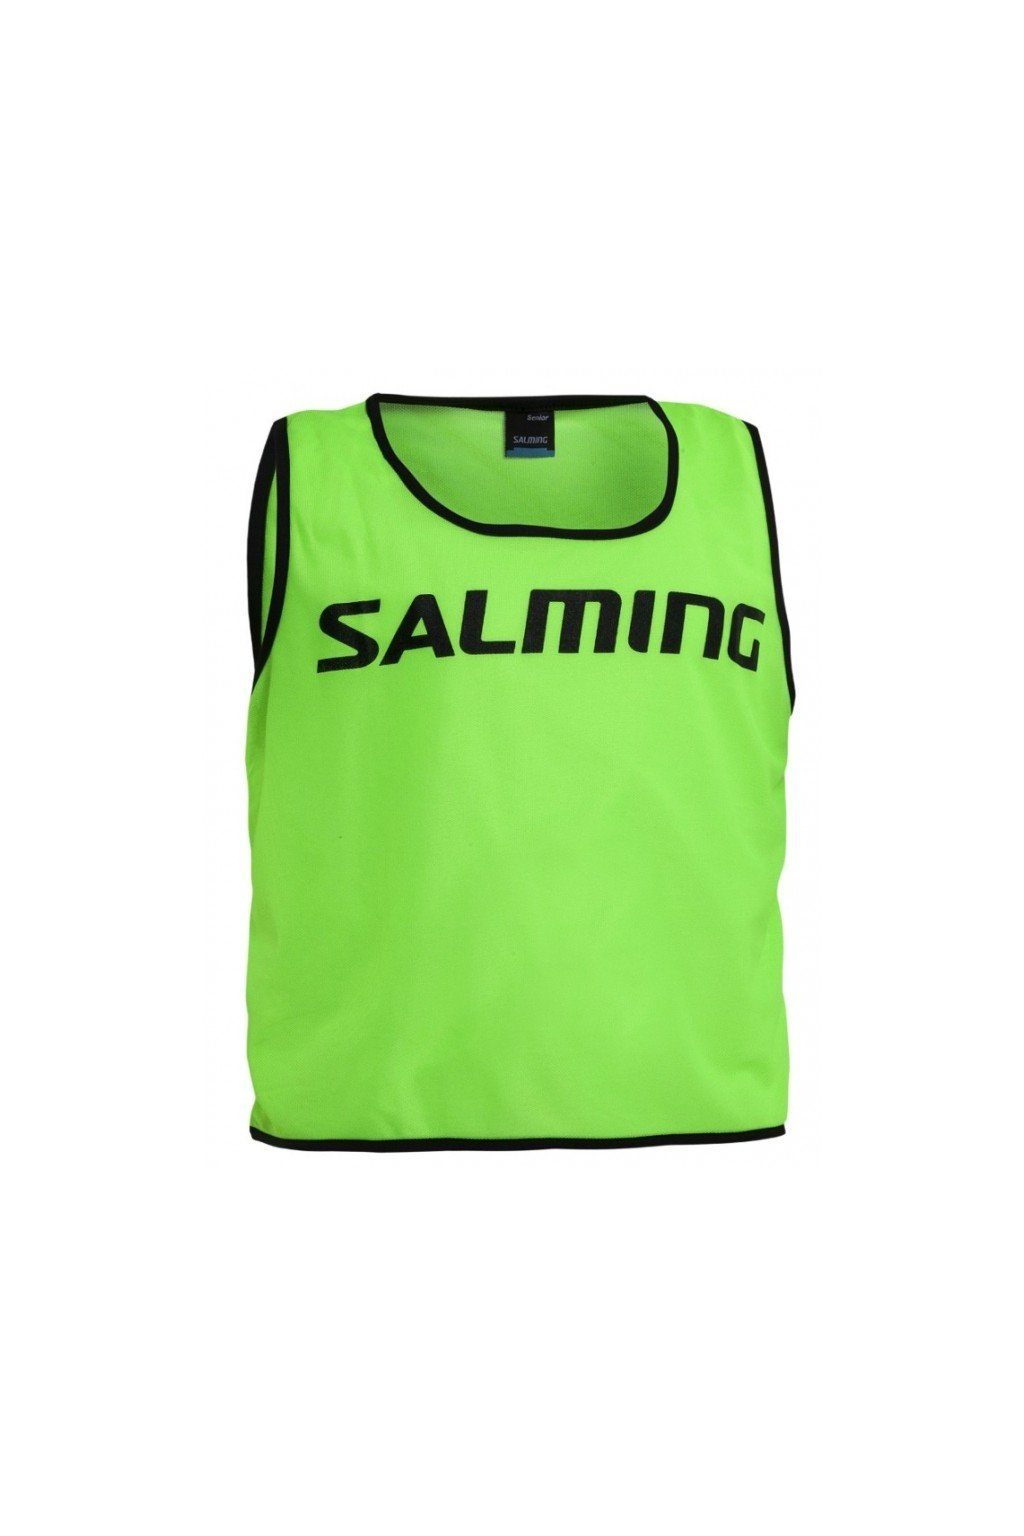 salming training vest green jr